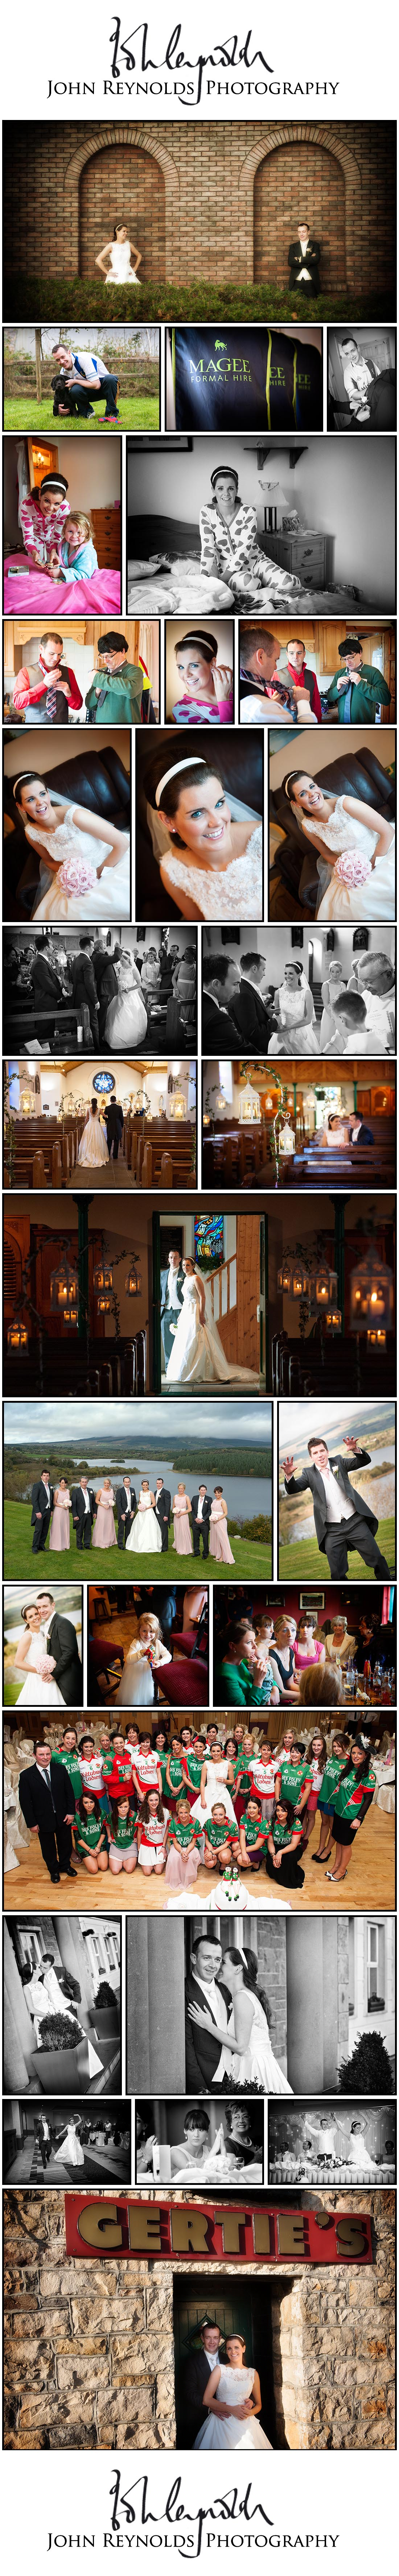 Blog Collage-Jenny & James